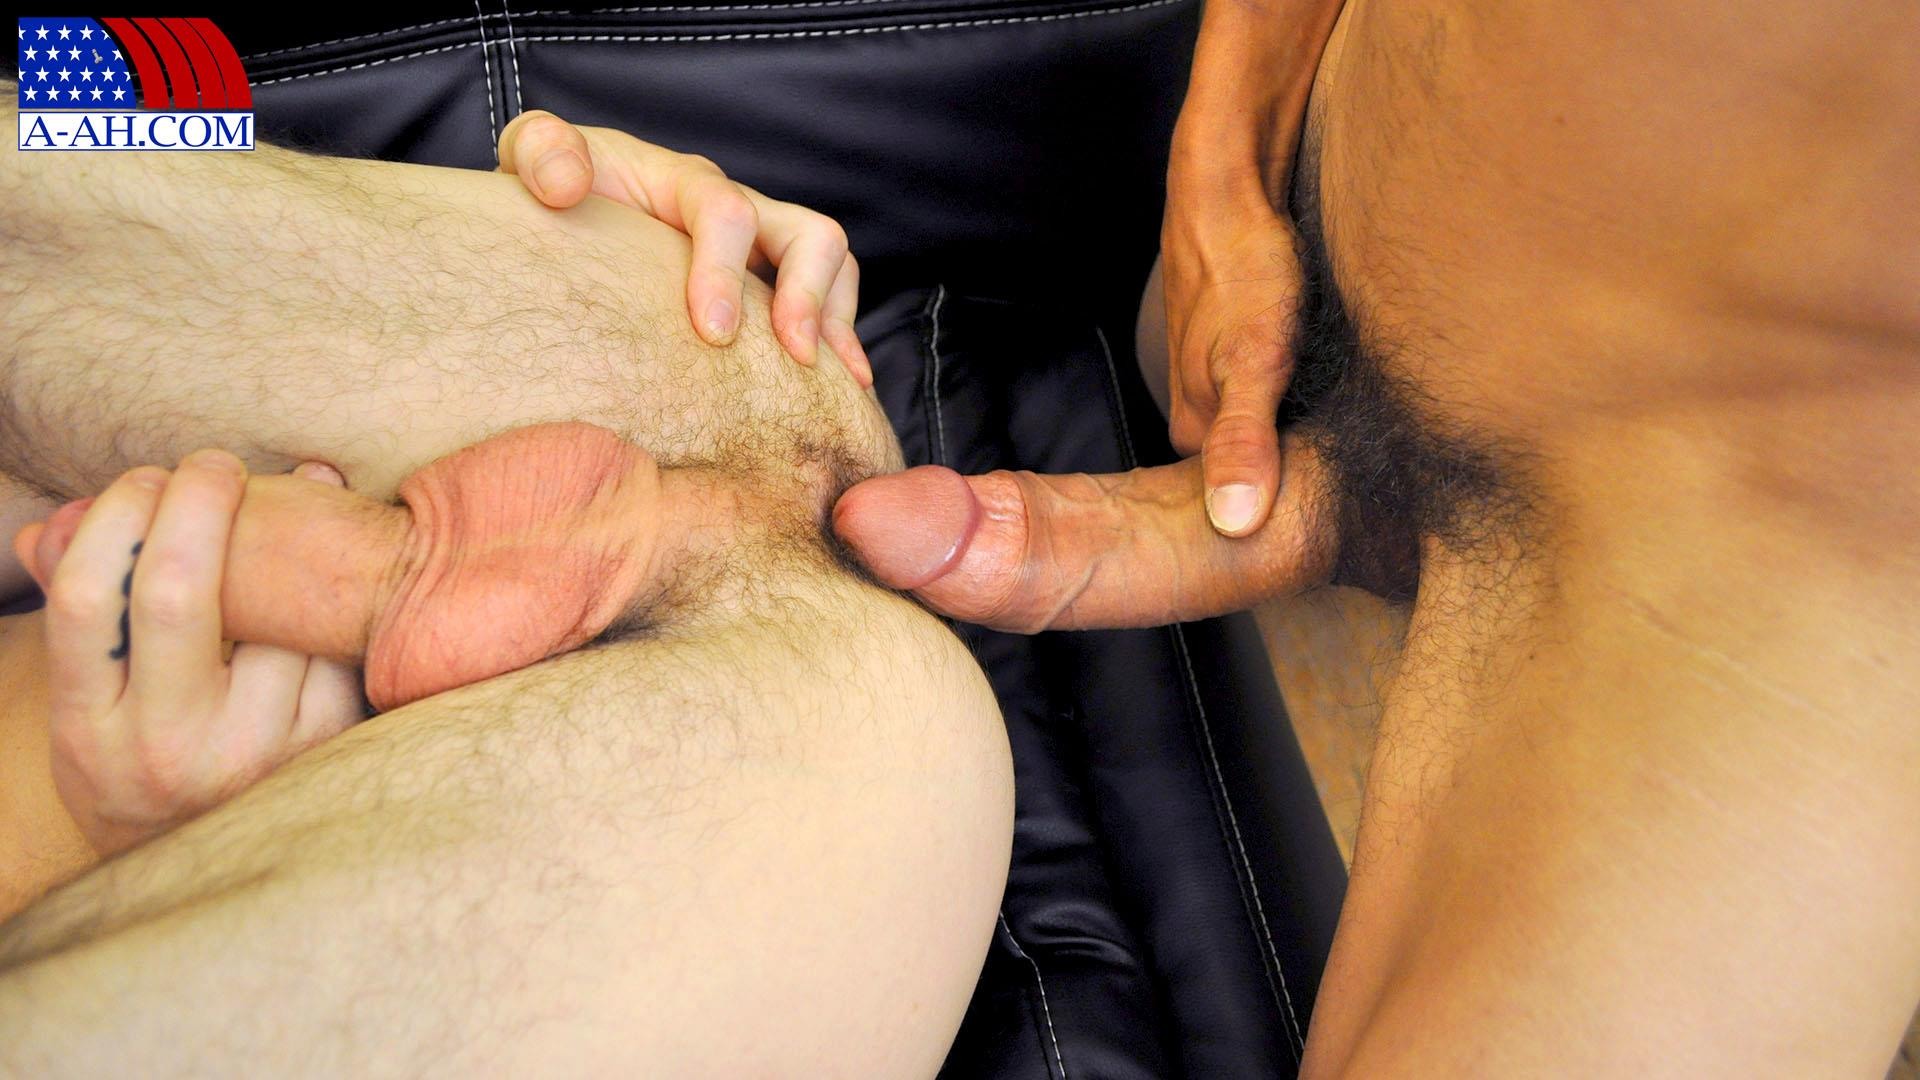 All-American-Heroes-Navy-Petty-Officer-Eddy-fucking-Army-Sergeant-Miles-Big-Uncut-Cock-Amateur-Gay-Porn-03 Navy Petty Officer Fucks A Muscle Army Sergeant